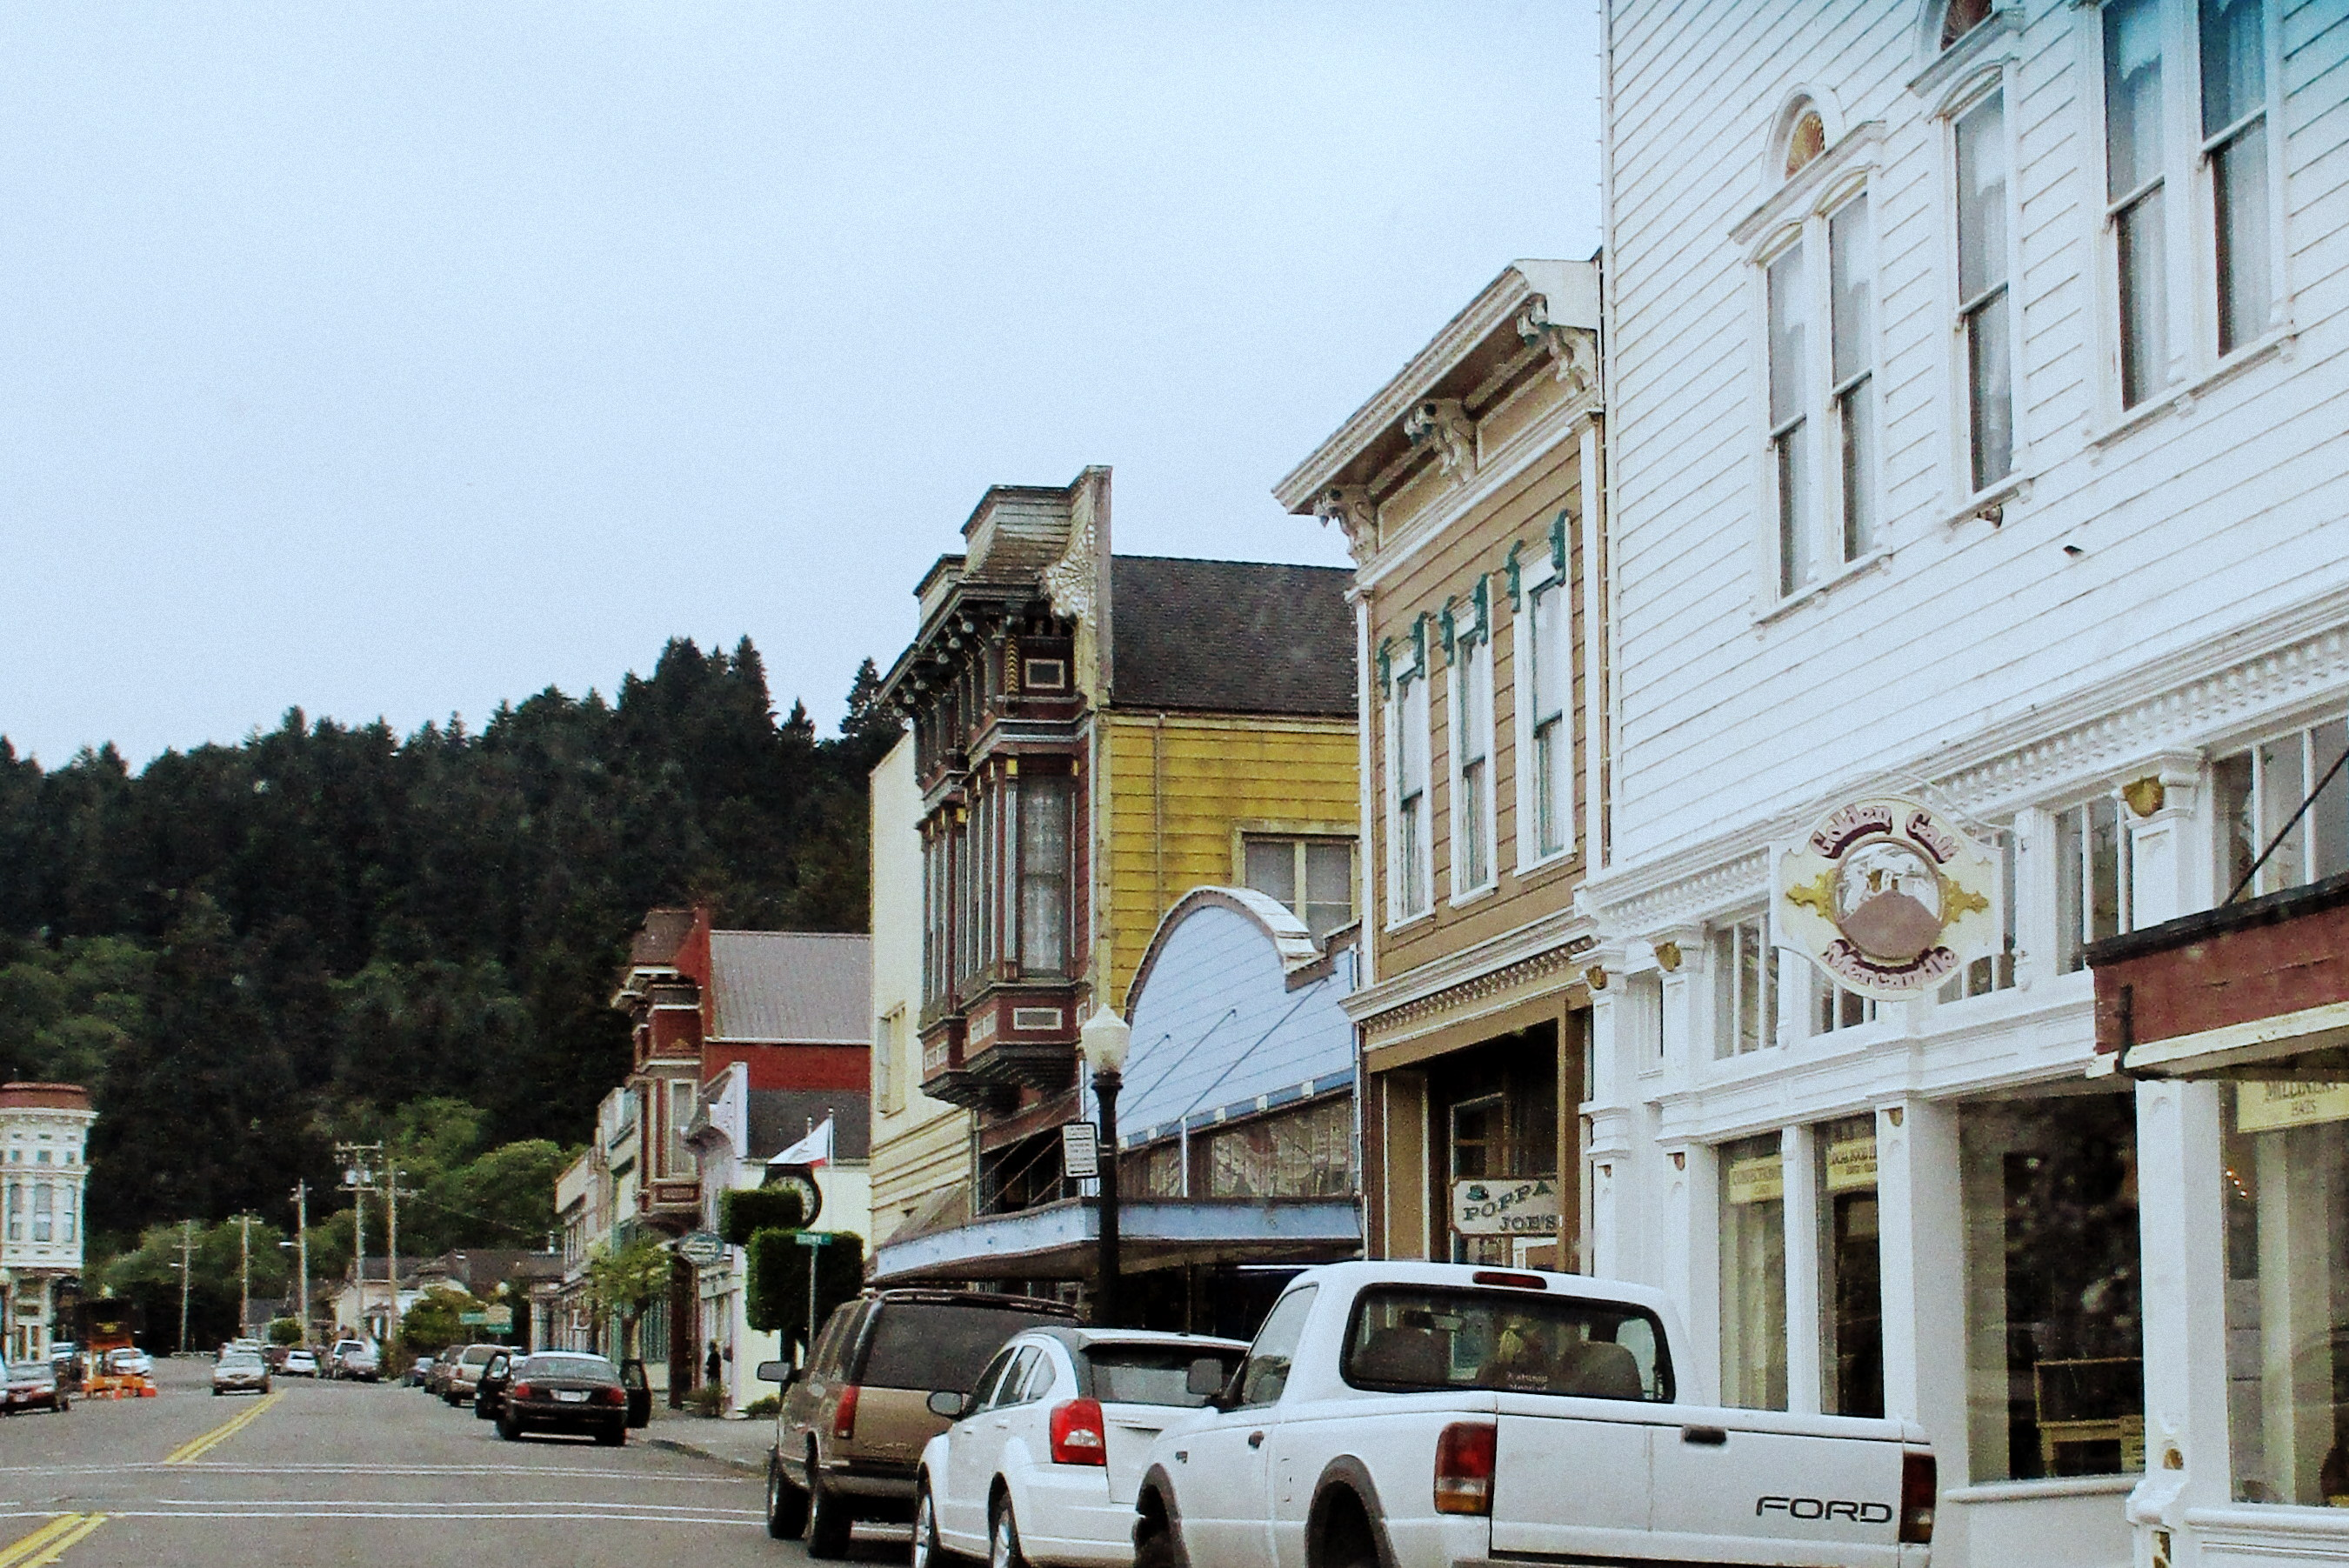 Downtown Ferndale